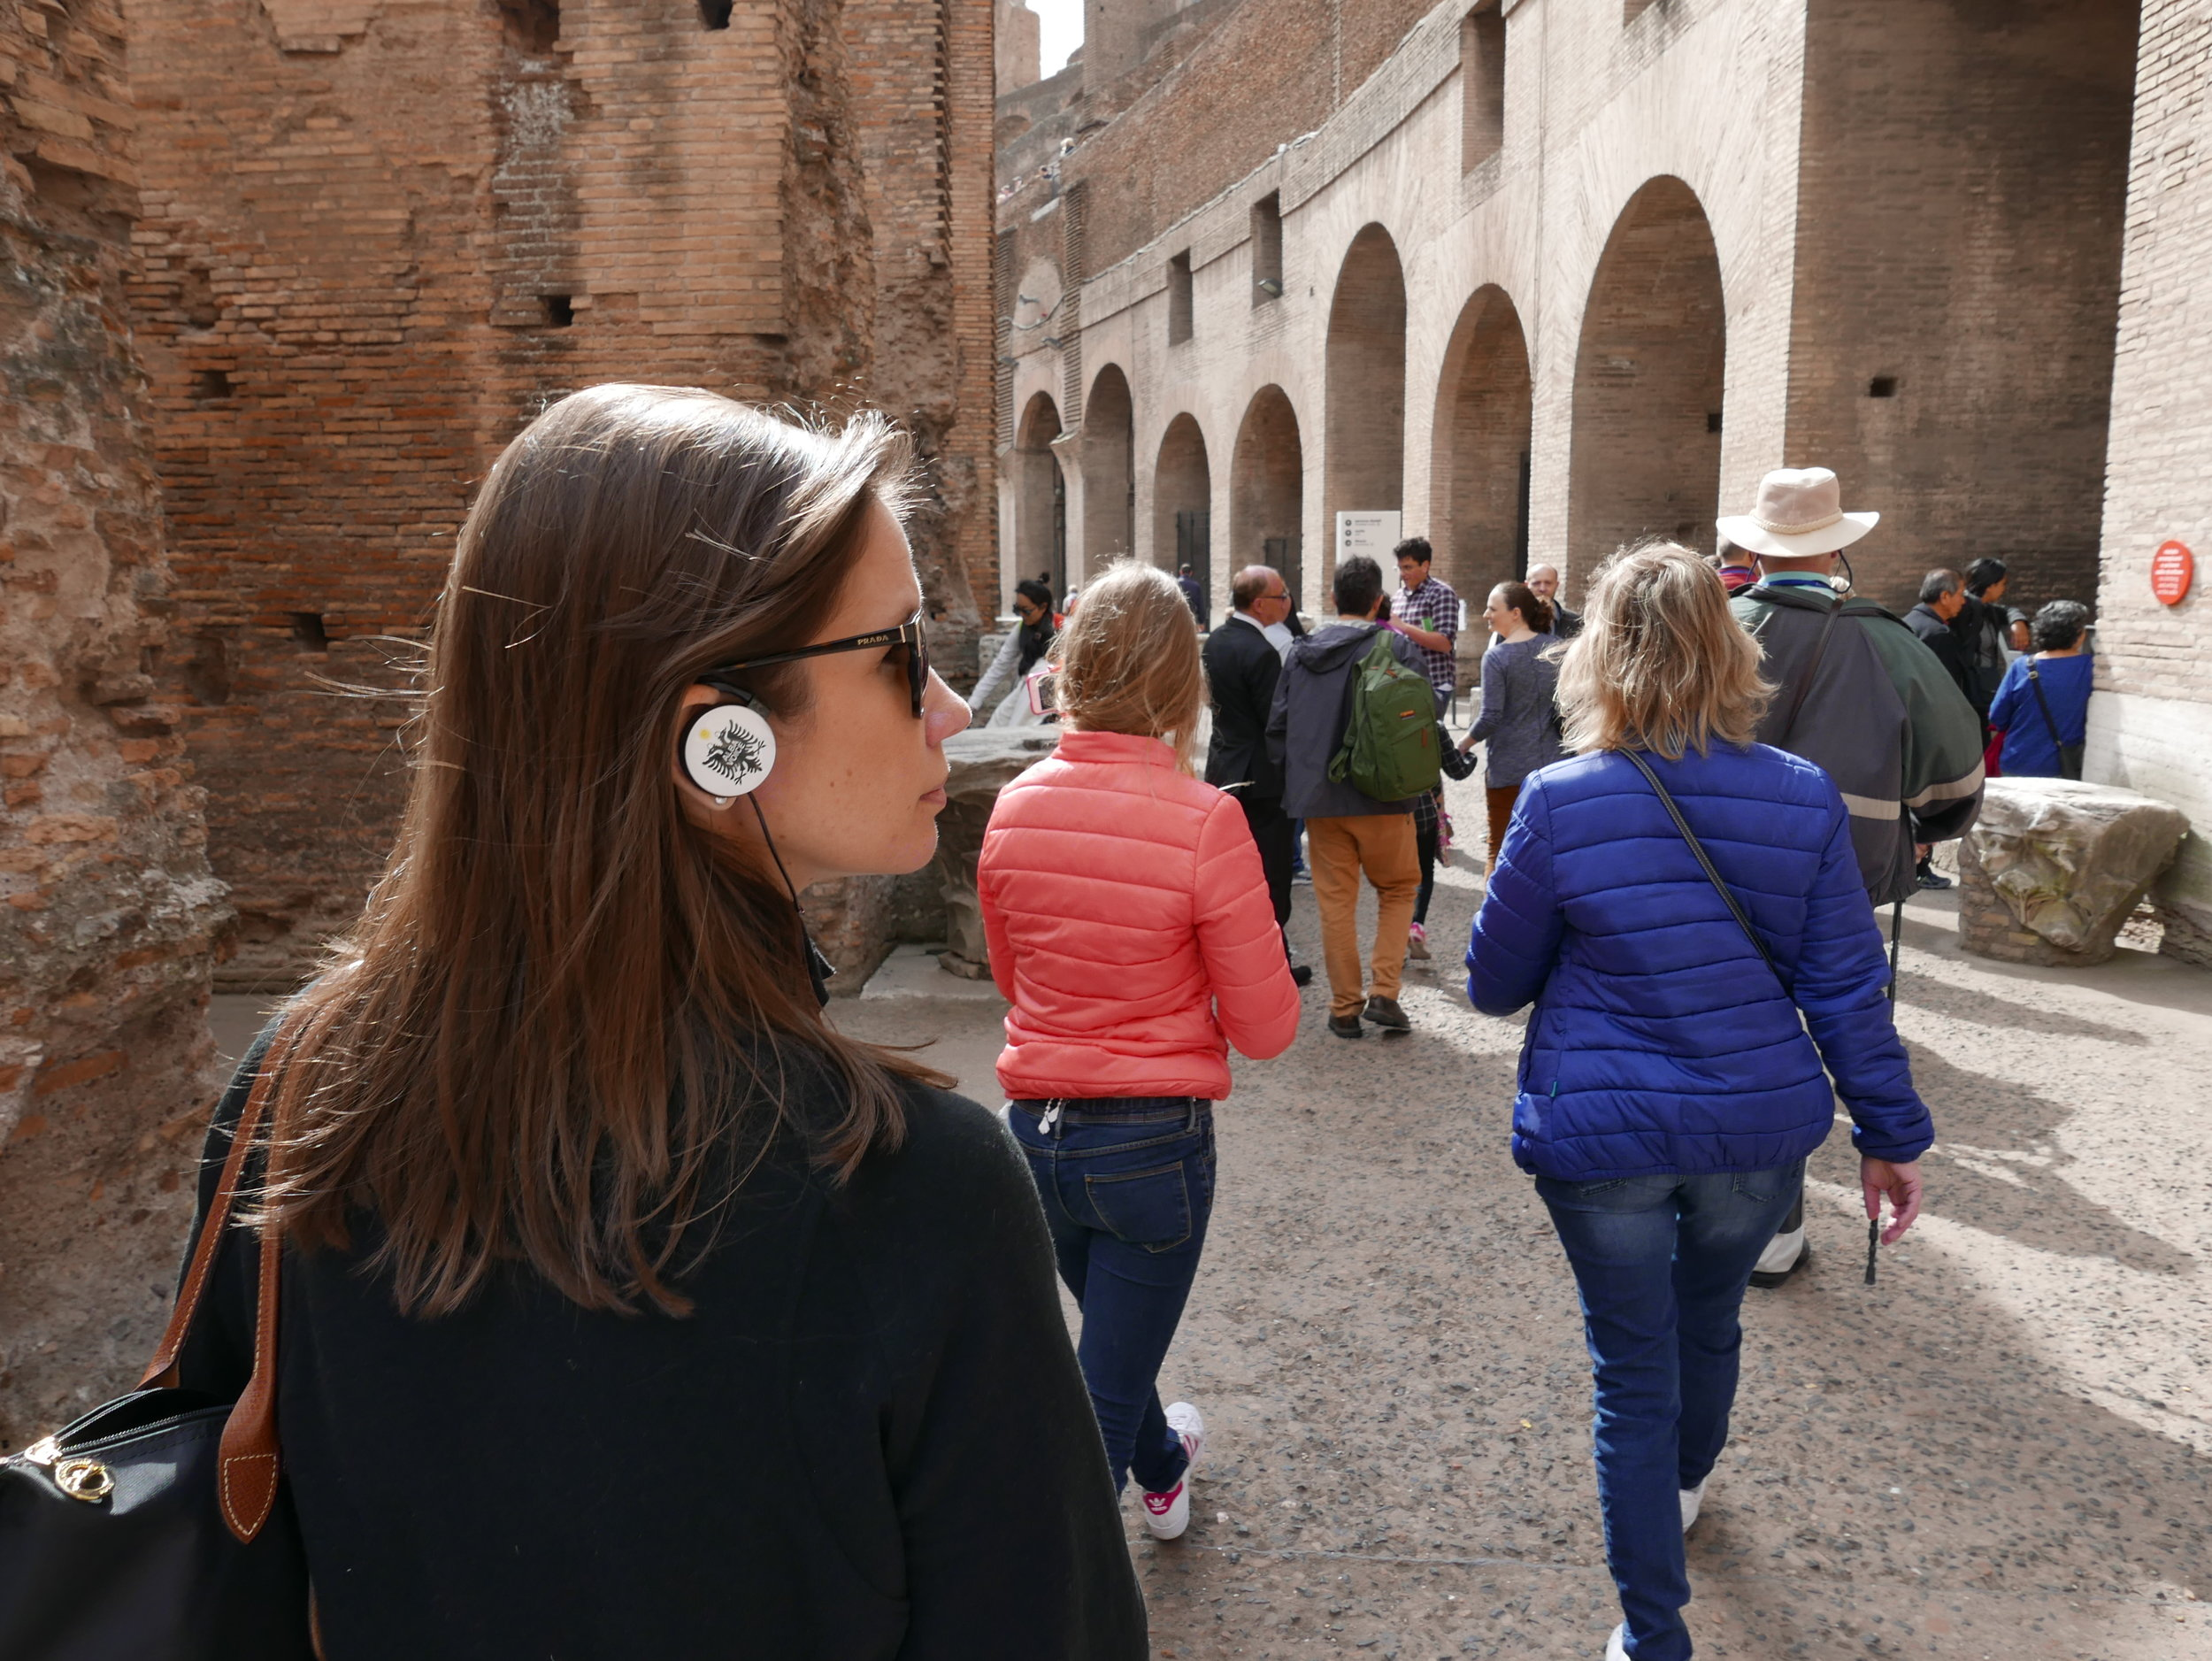 Two tips when going on a tour of the Colosseum: 1) bring your own earbuds if you don't want to wear the  uber  fashionable one-eared earbud (as pictured above)! 2) At least in the springtime, all that stone in the Colosseum traps in the cold air. In this instance, I was wearing not only my fleece, but Paul's too because I was freezing! So make sure you layer, even if it is a nice day out.